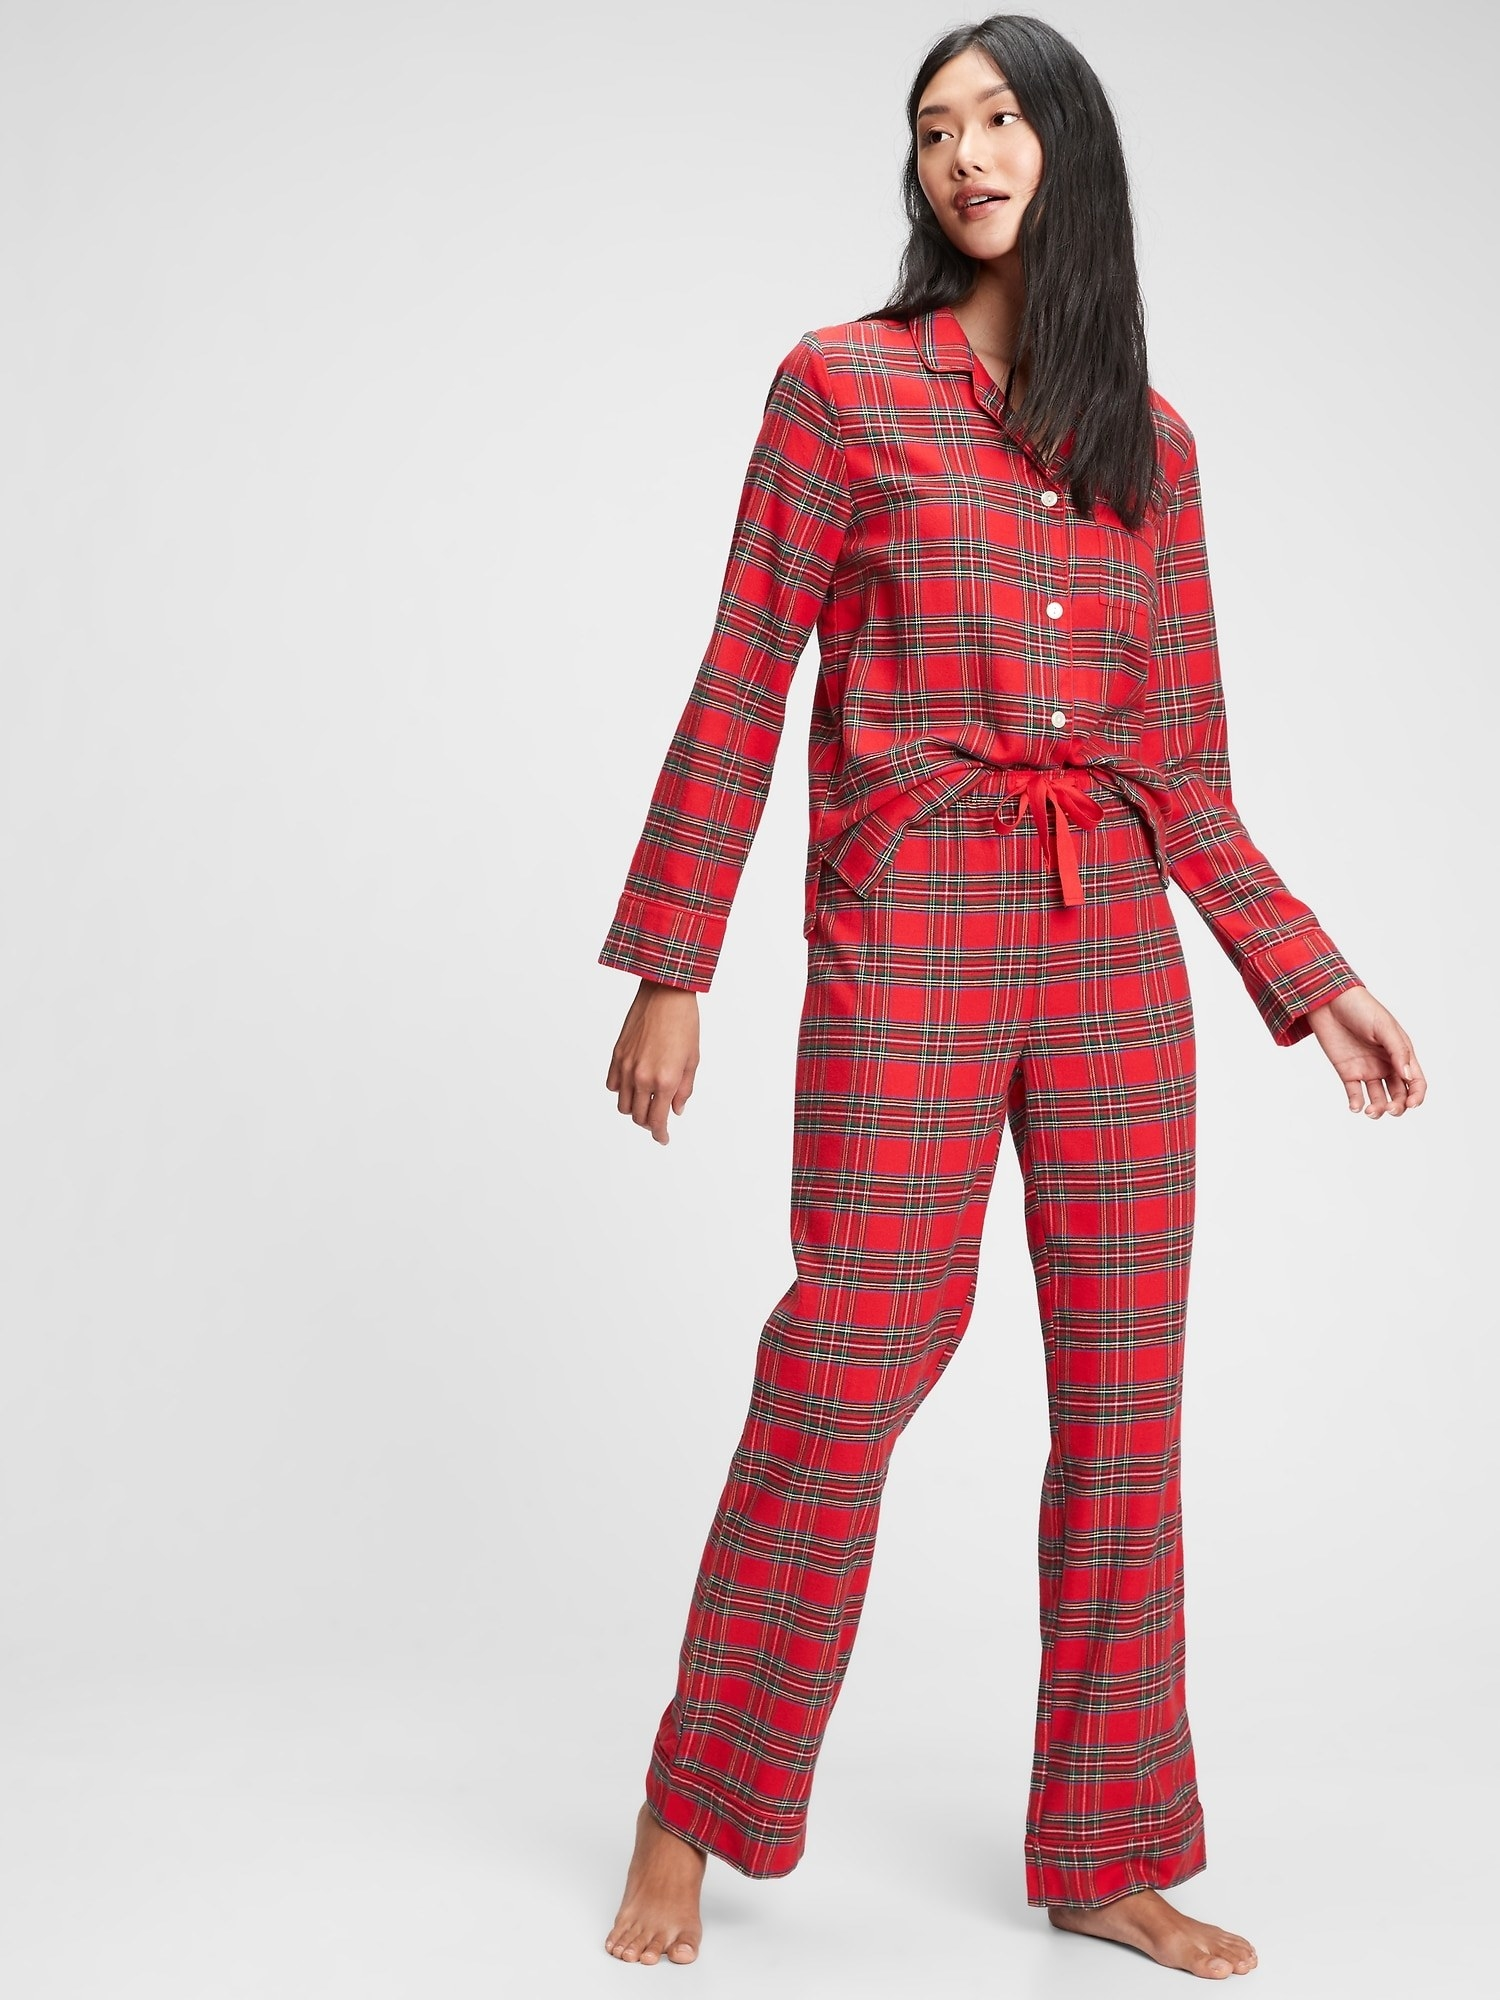 a model in red flannel pajamas